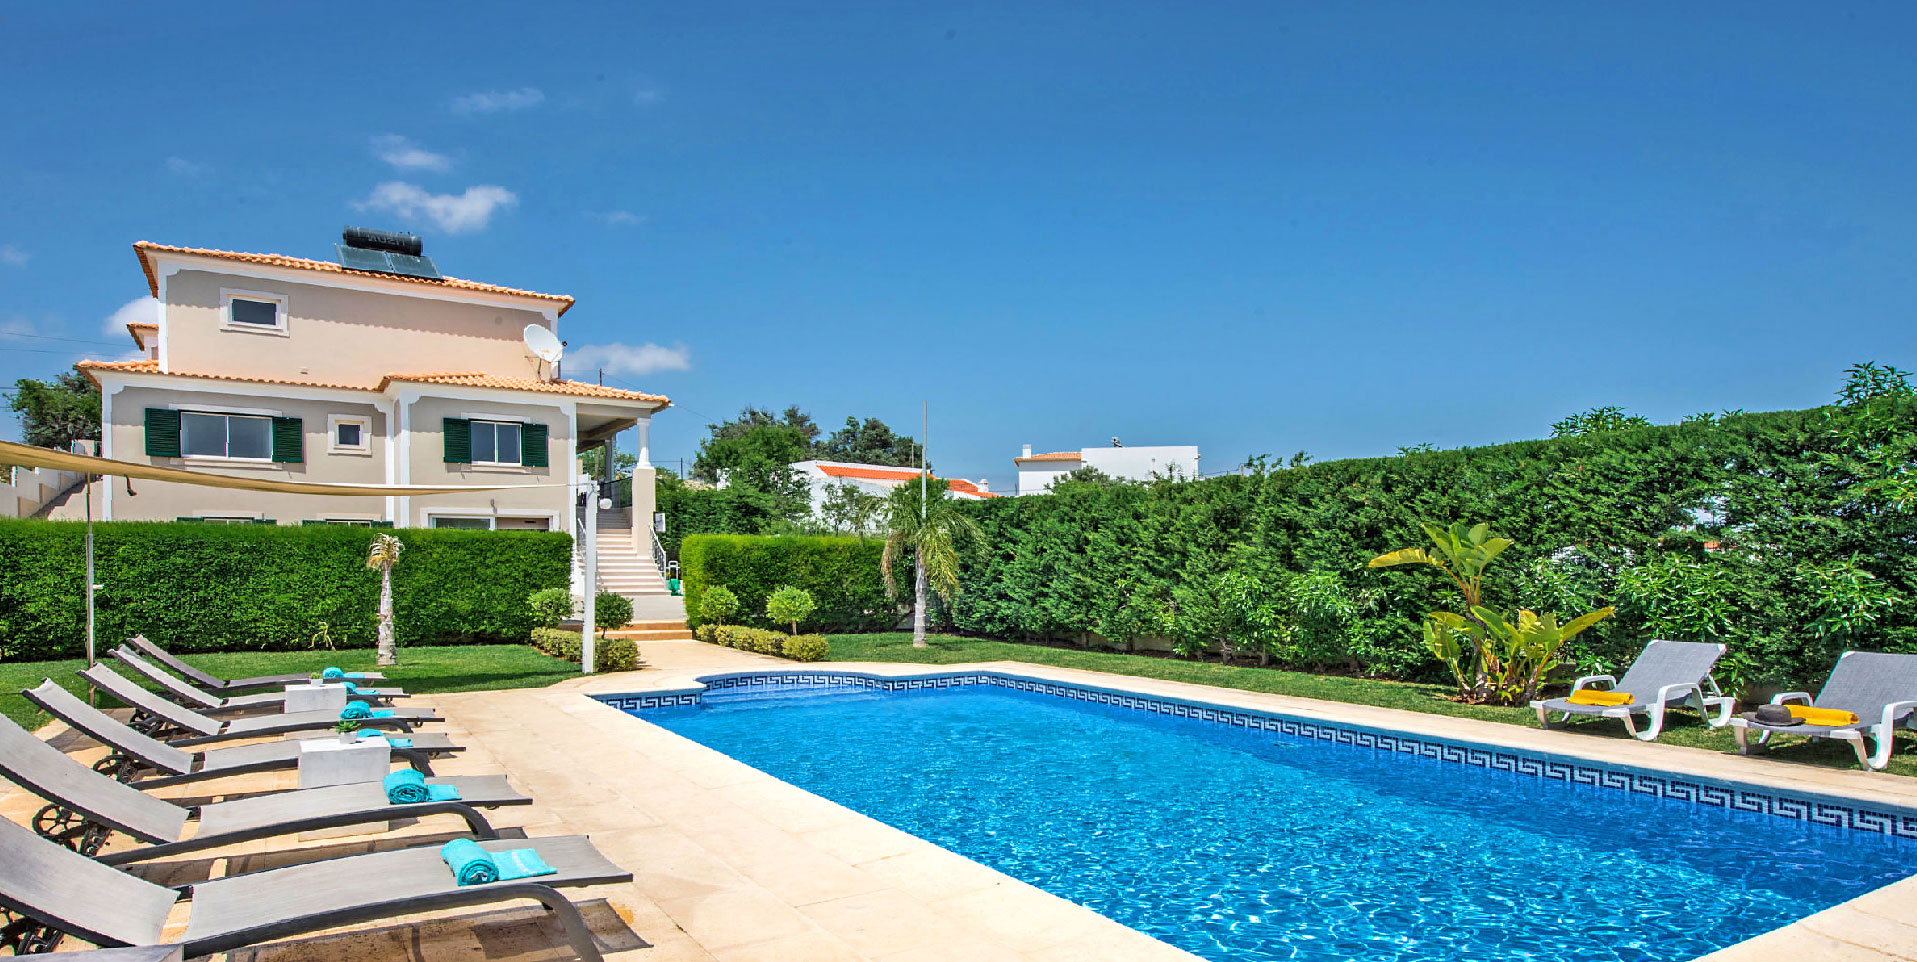 All our villas have been carefully selected Algarve, spain